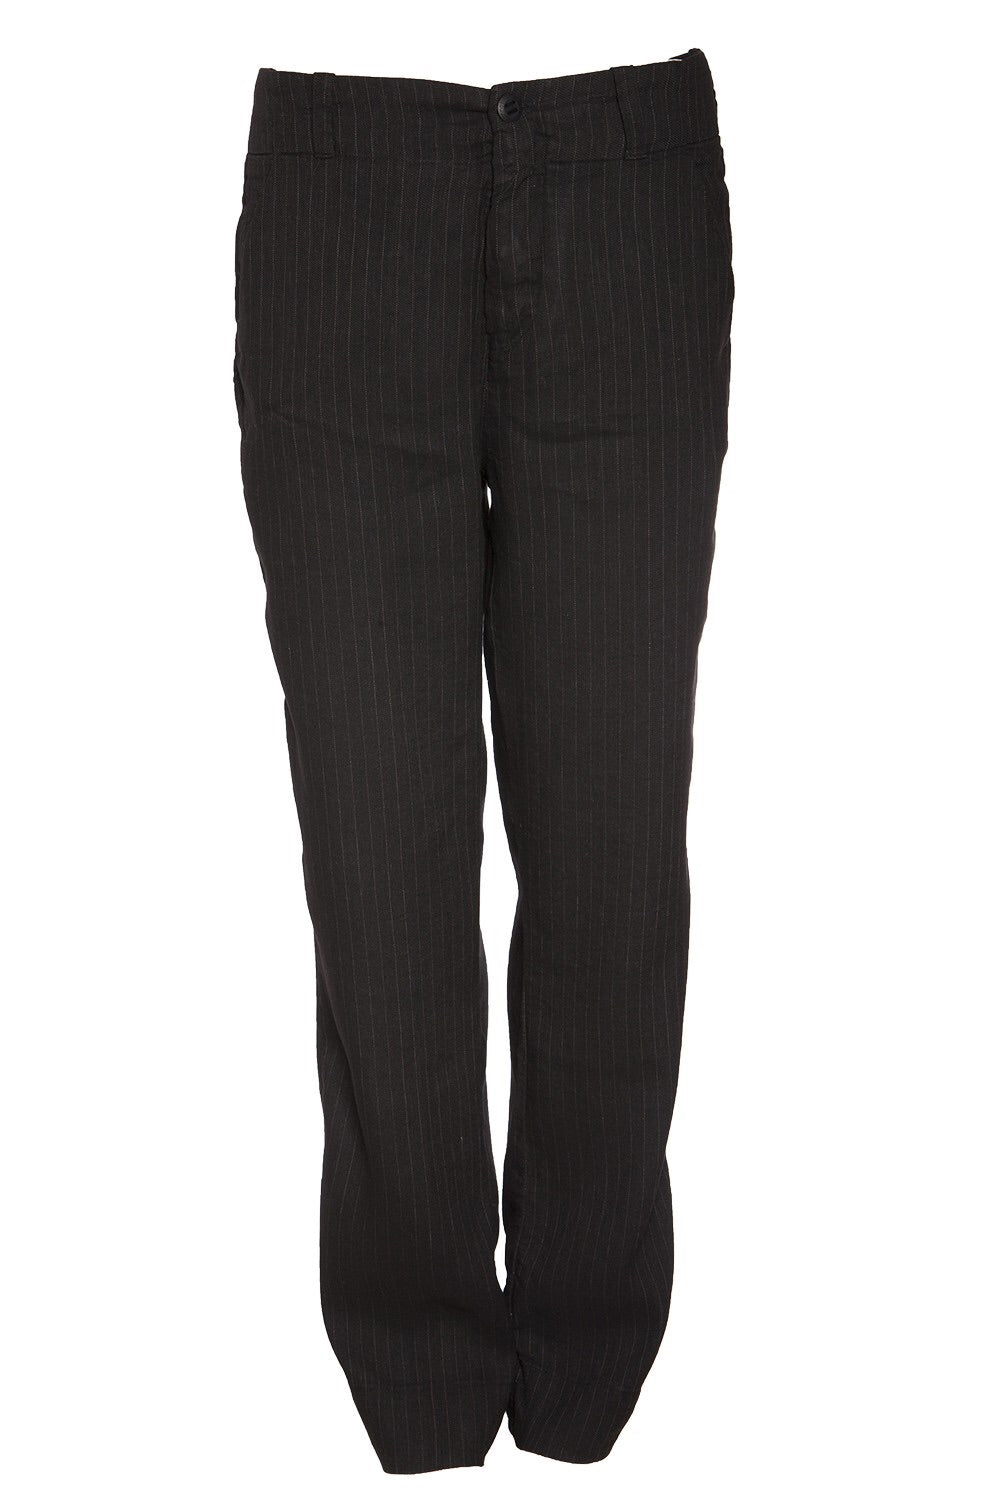 Hannes Roether Linen Pinstripe Trouser